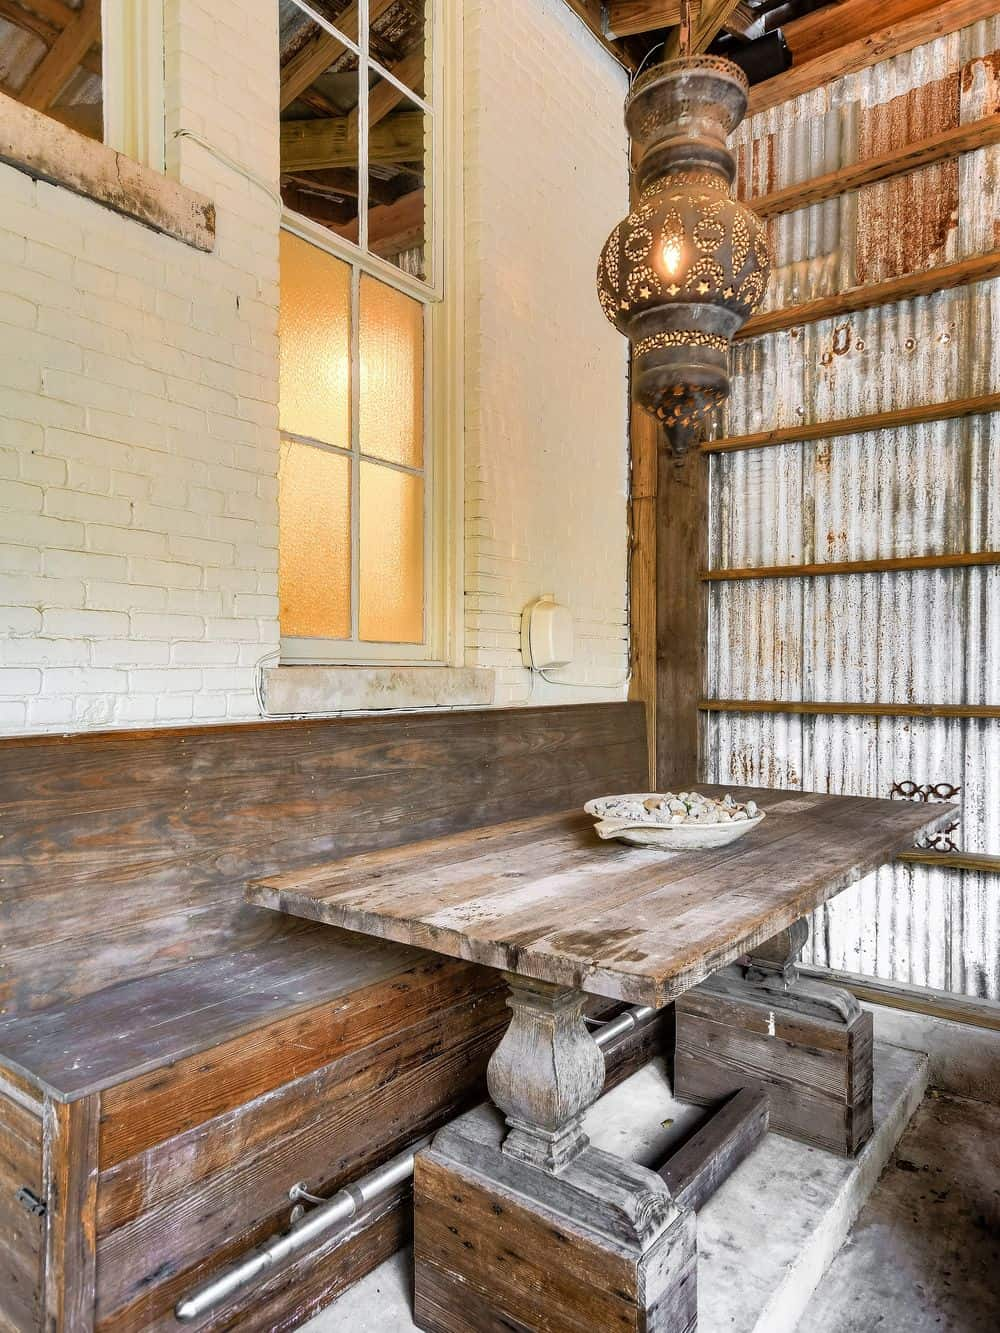 There is a quaint corner in the back of the house fitted with a wooden built-in bench for a booth-style informal dining area. Images courtesy of Toptenrealestatedeals.com.